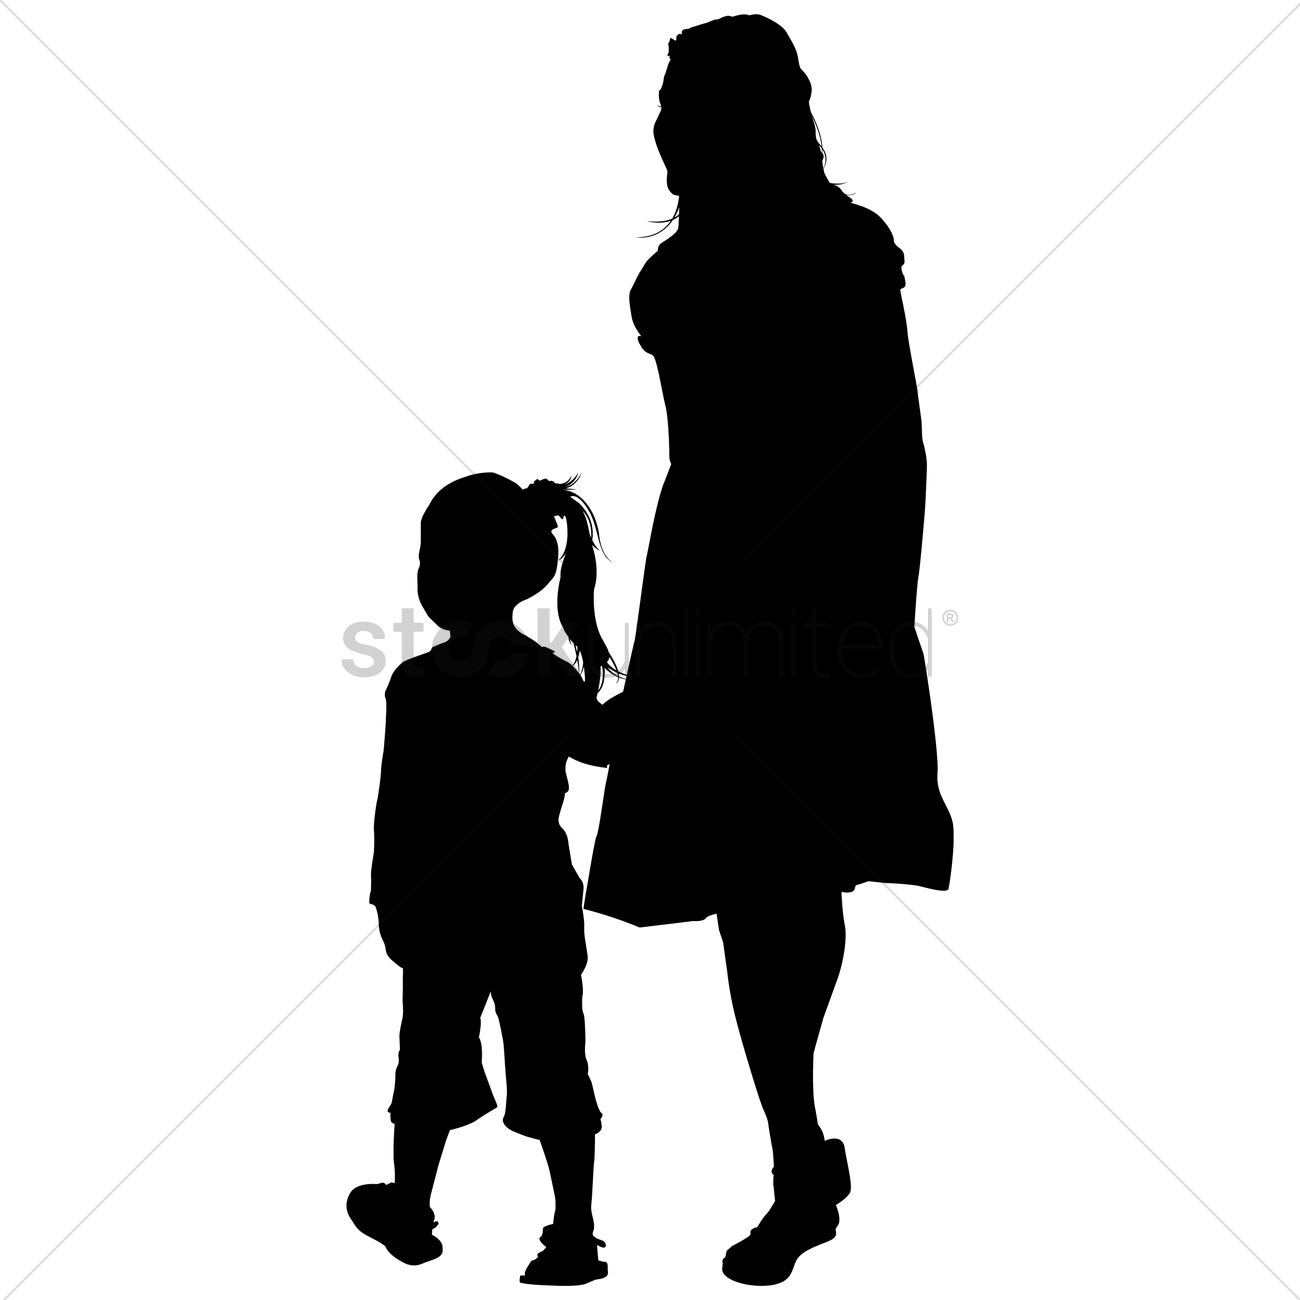 Love The Mother Child Silhouette: Father Daughter Silhouette Clip Art At GetDrawings.com